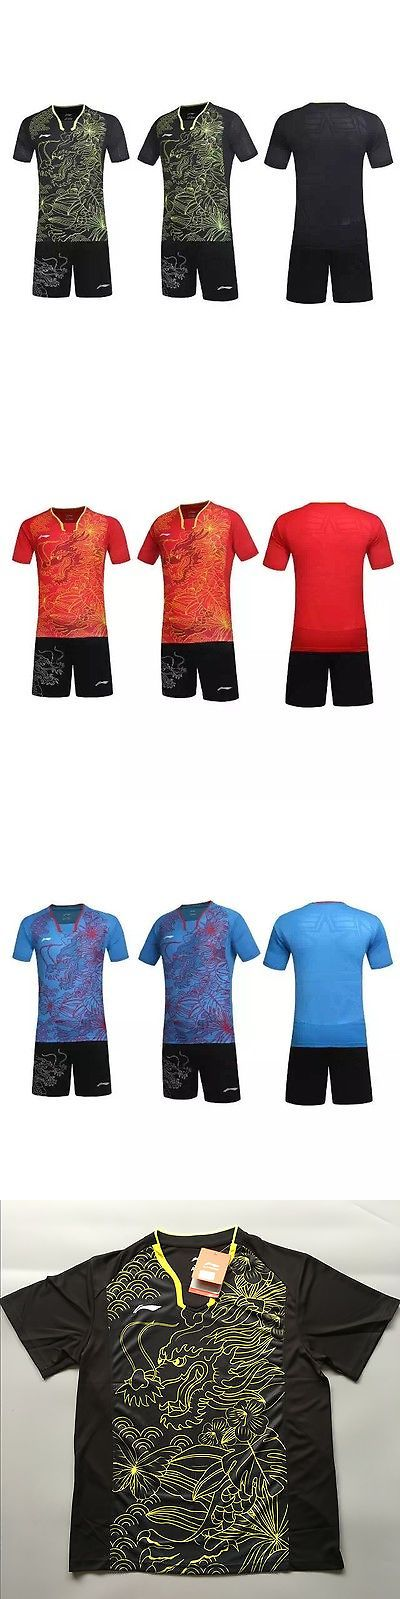 Shirts and Tops 70900: 2016 Rio Olympics Li Ning Mens Tops Table Tennis Clothing T-Shirt + Shorts -> BUY IT NOW ONLY: $31.99 on eBay!